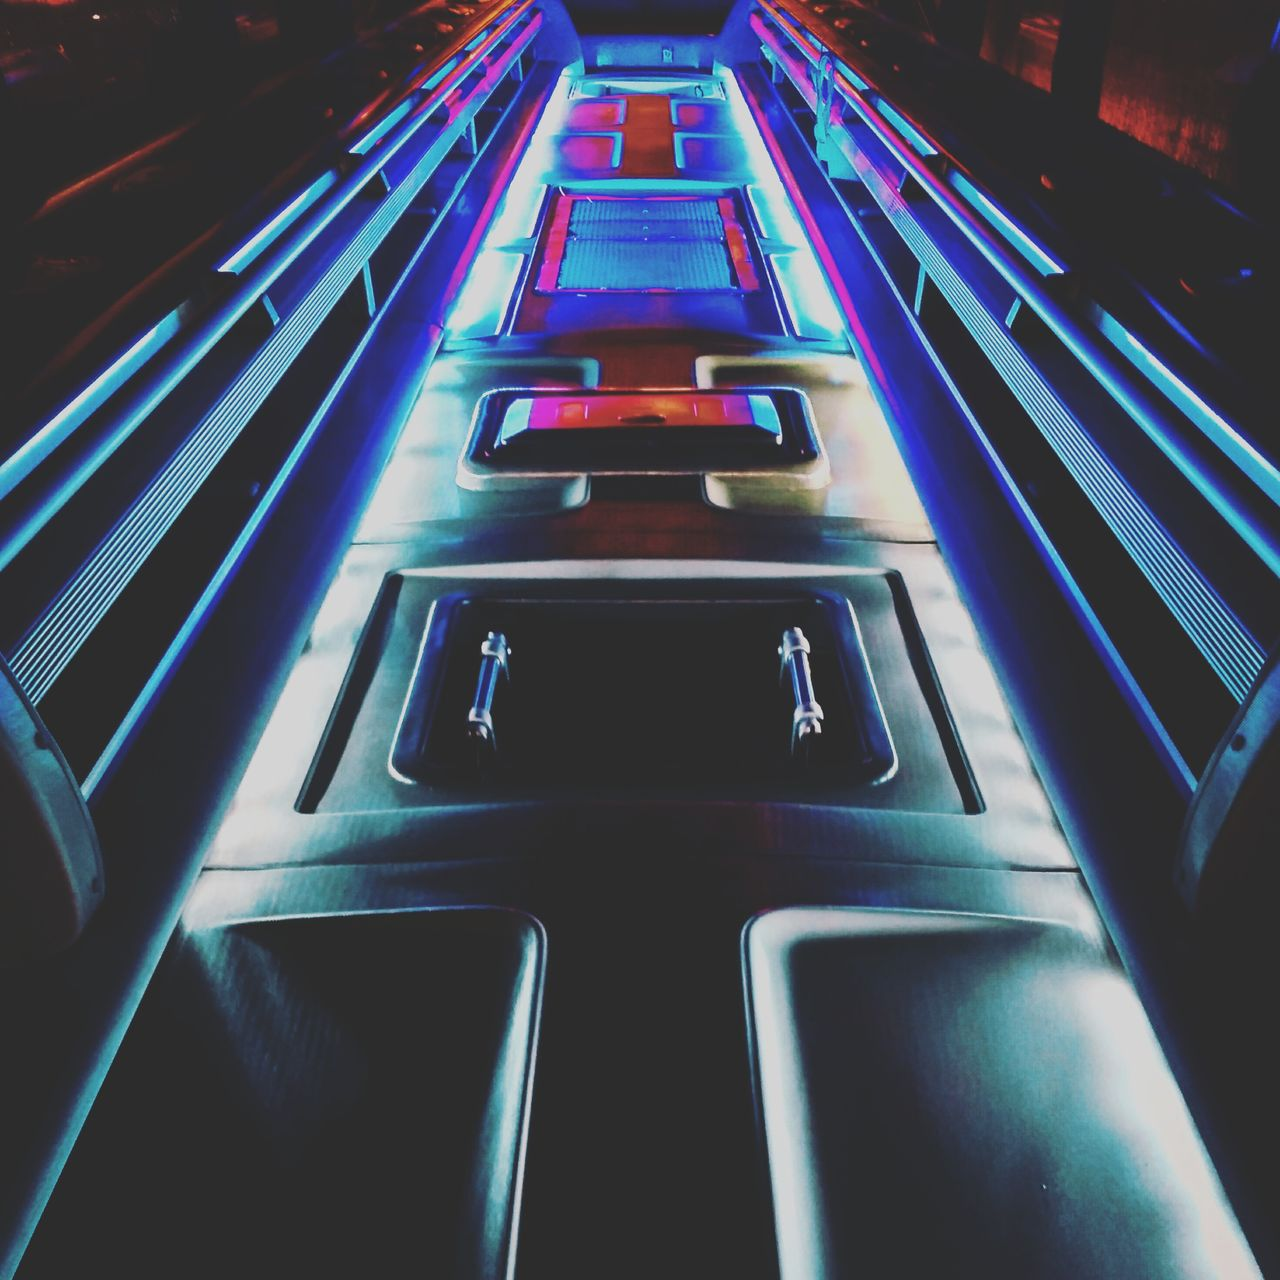 Light Lights At Night Lightandcolourful Colourfull Nightlight Indoors Interior Design Design Style Decor Decoration Perspective Perspective View View